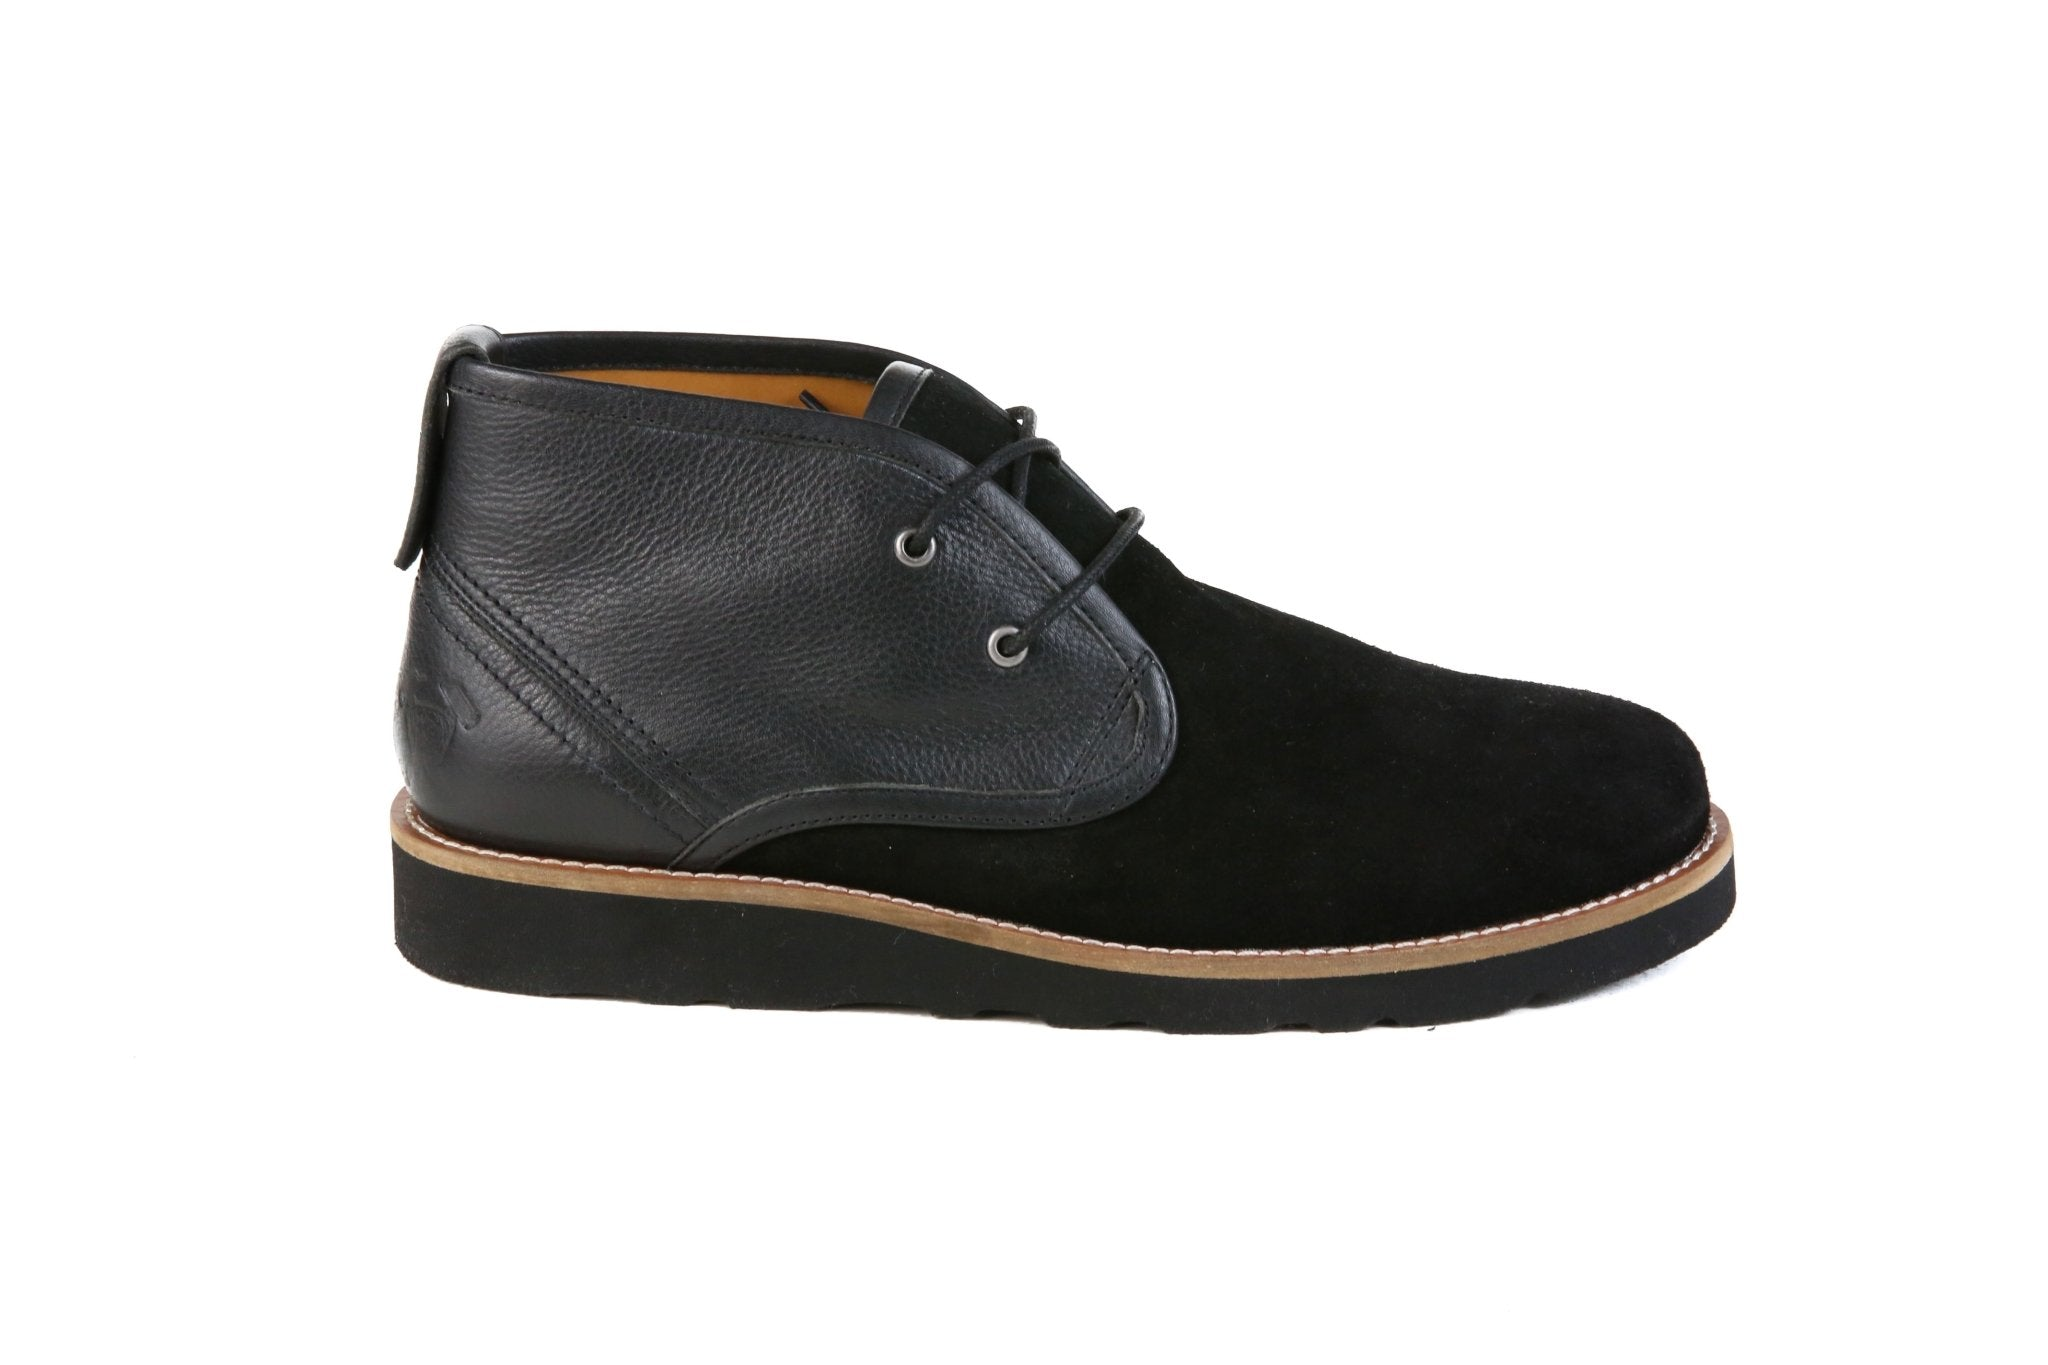 Hound & Hammer The Nolan | Black Ankle Boots for Men